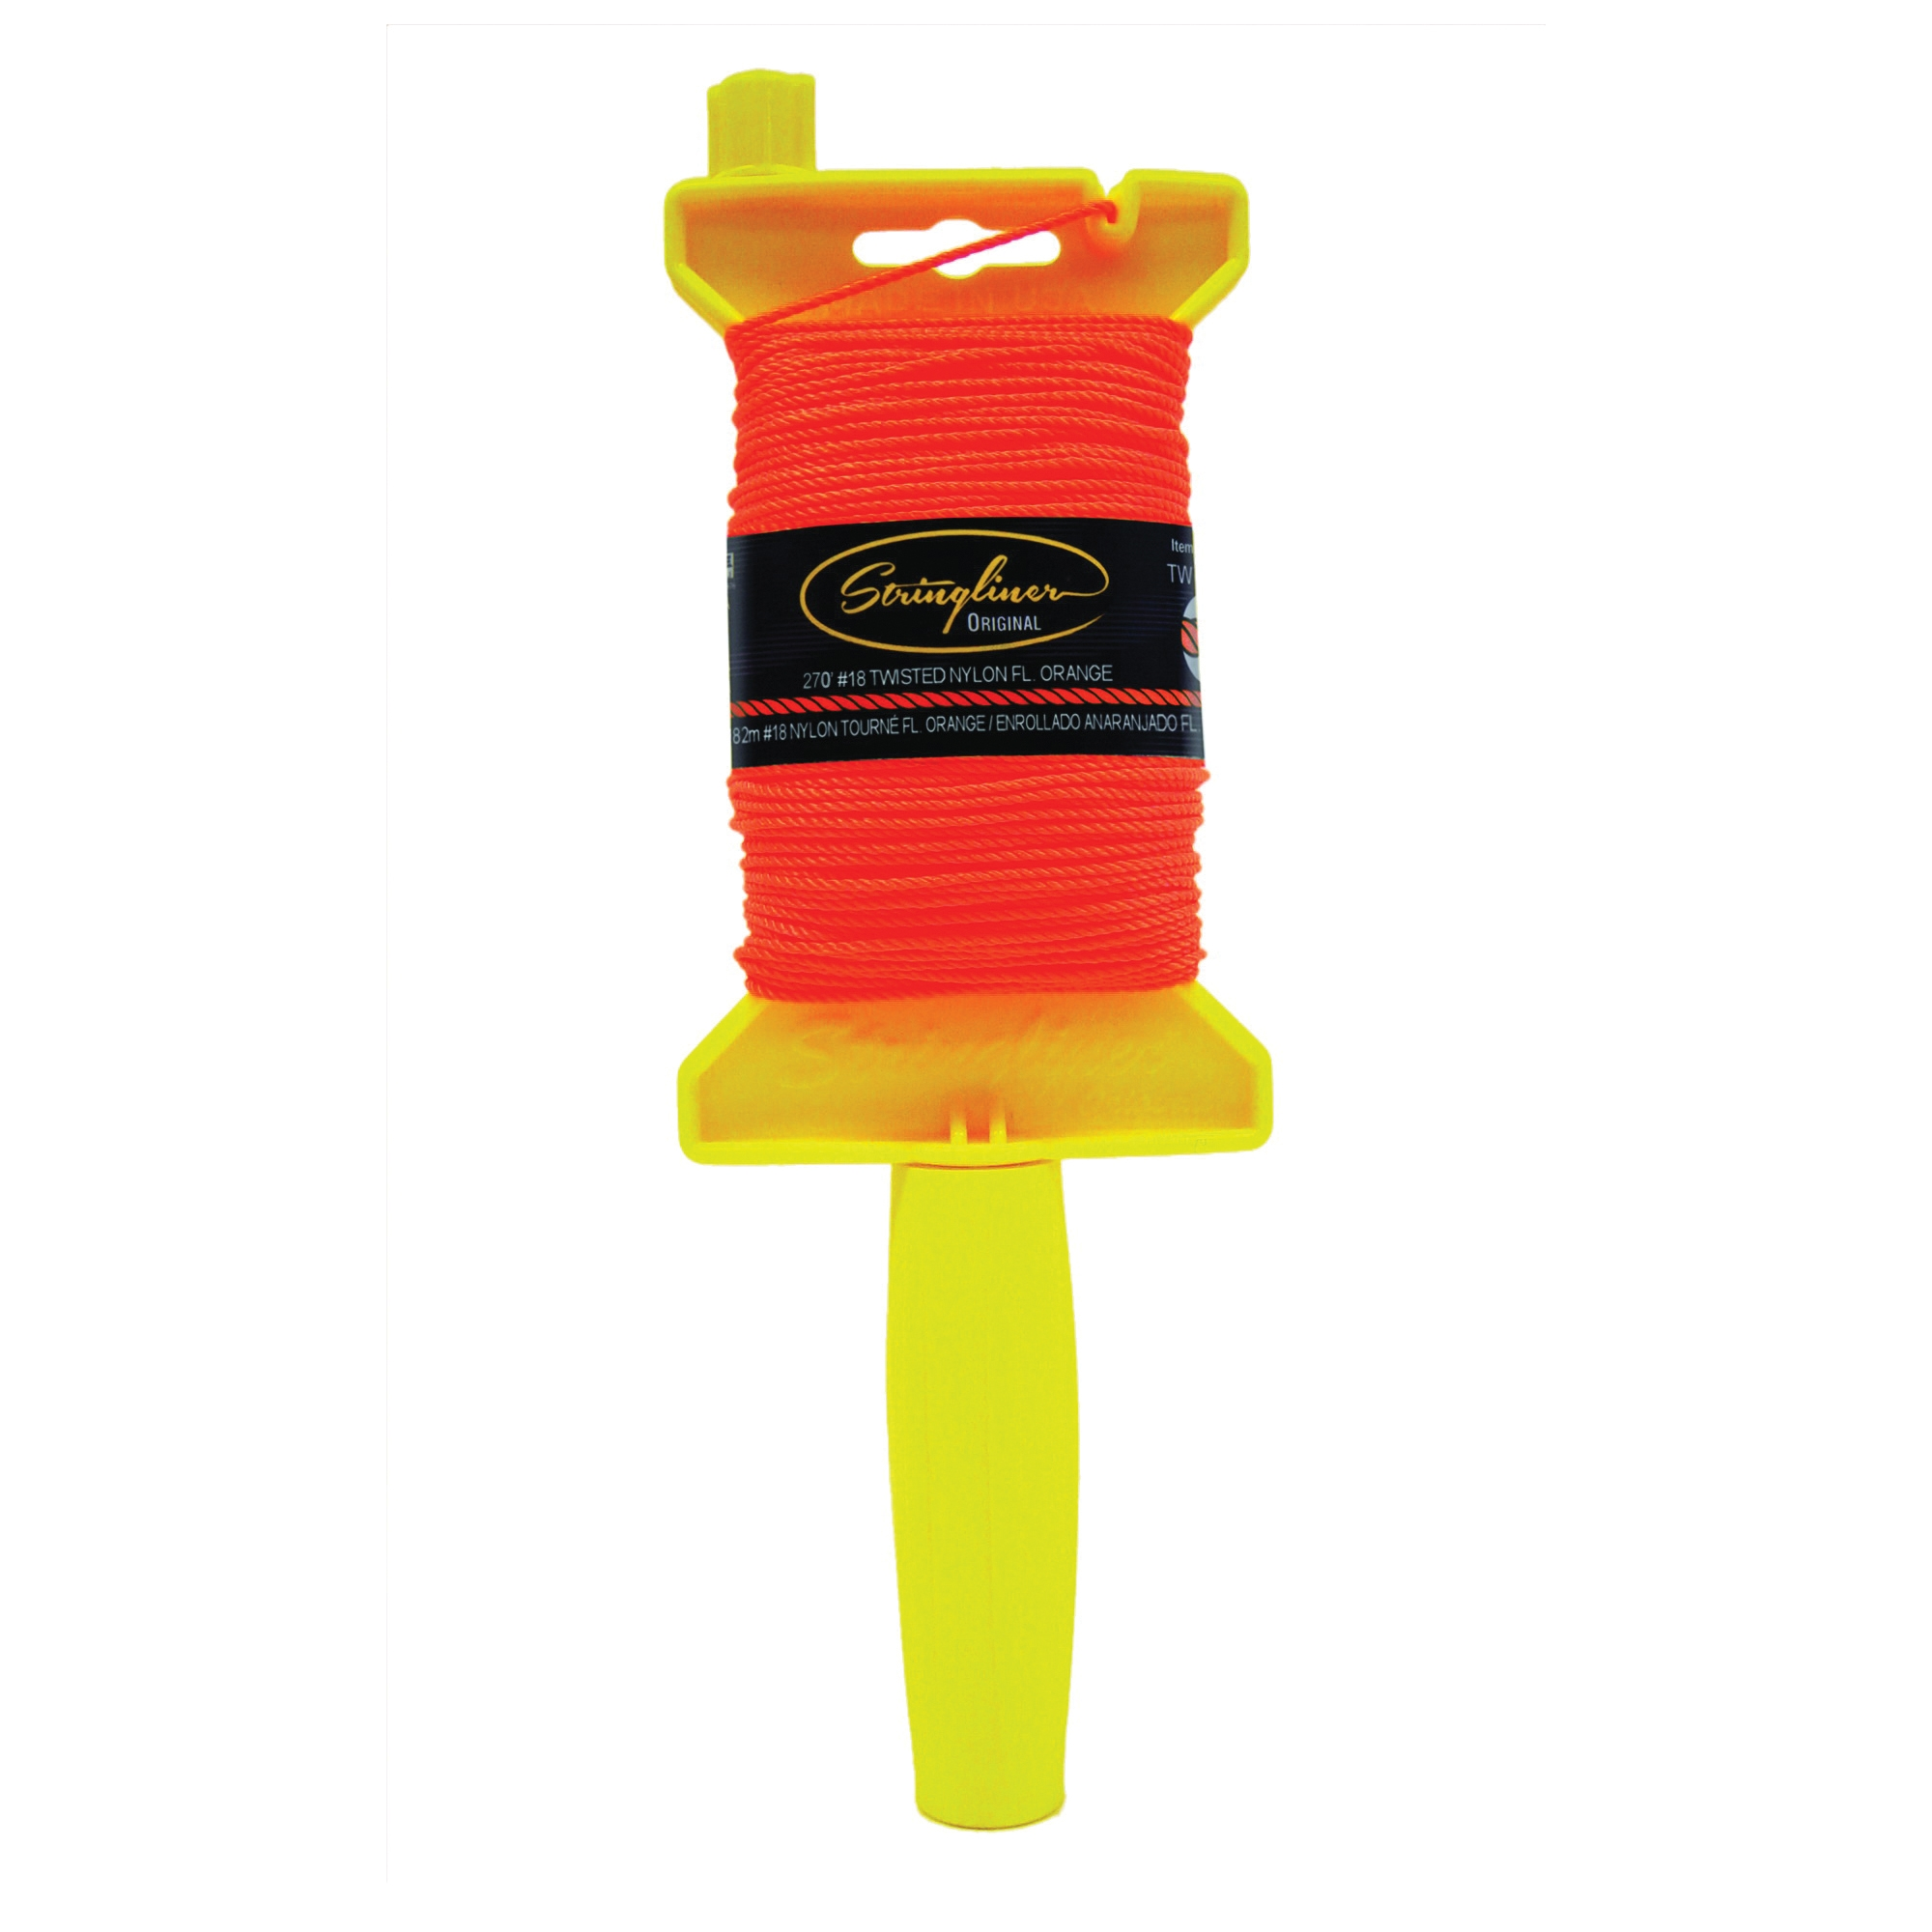 Picture of Stringliner 11706 Line Reel, 500 ft L Line, Fluorescent Orange Line